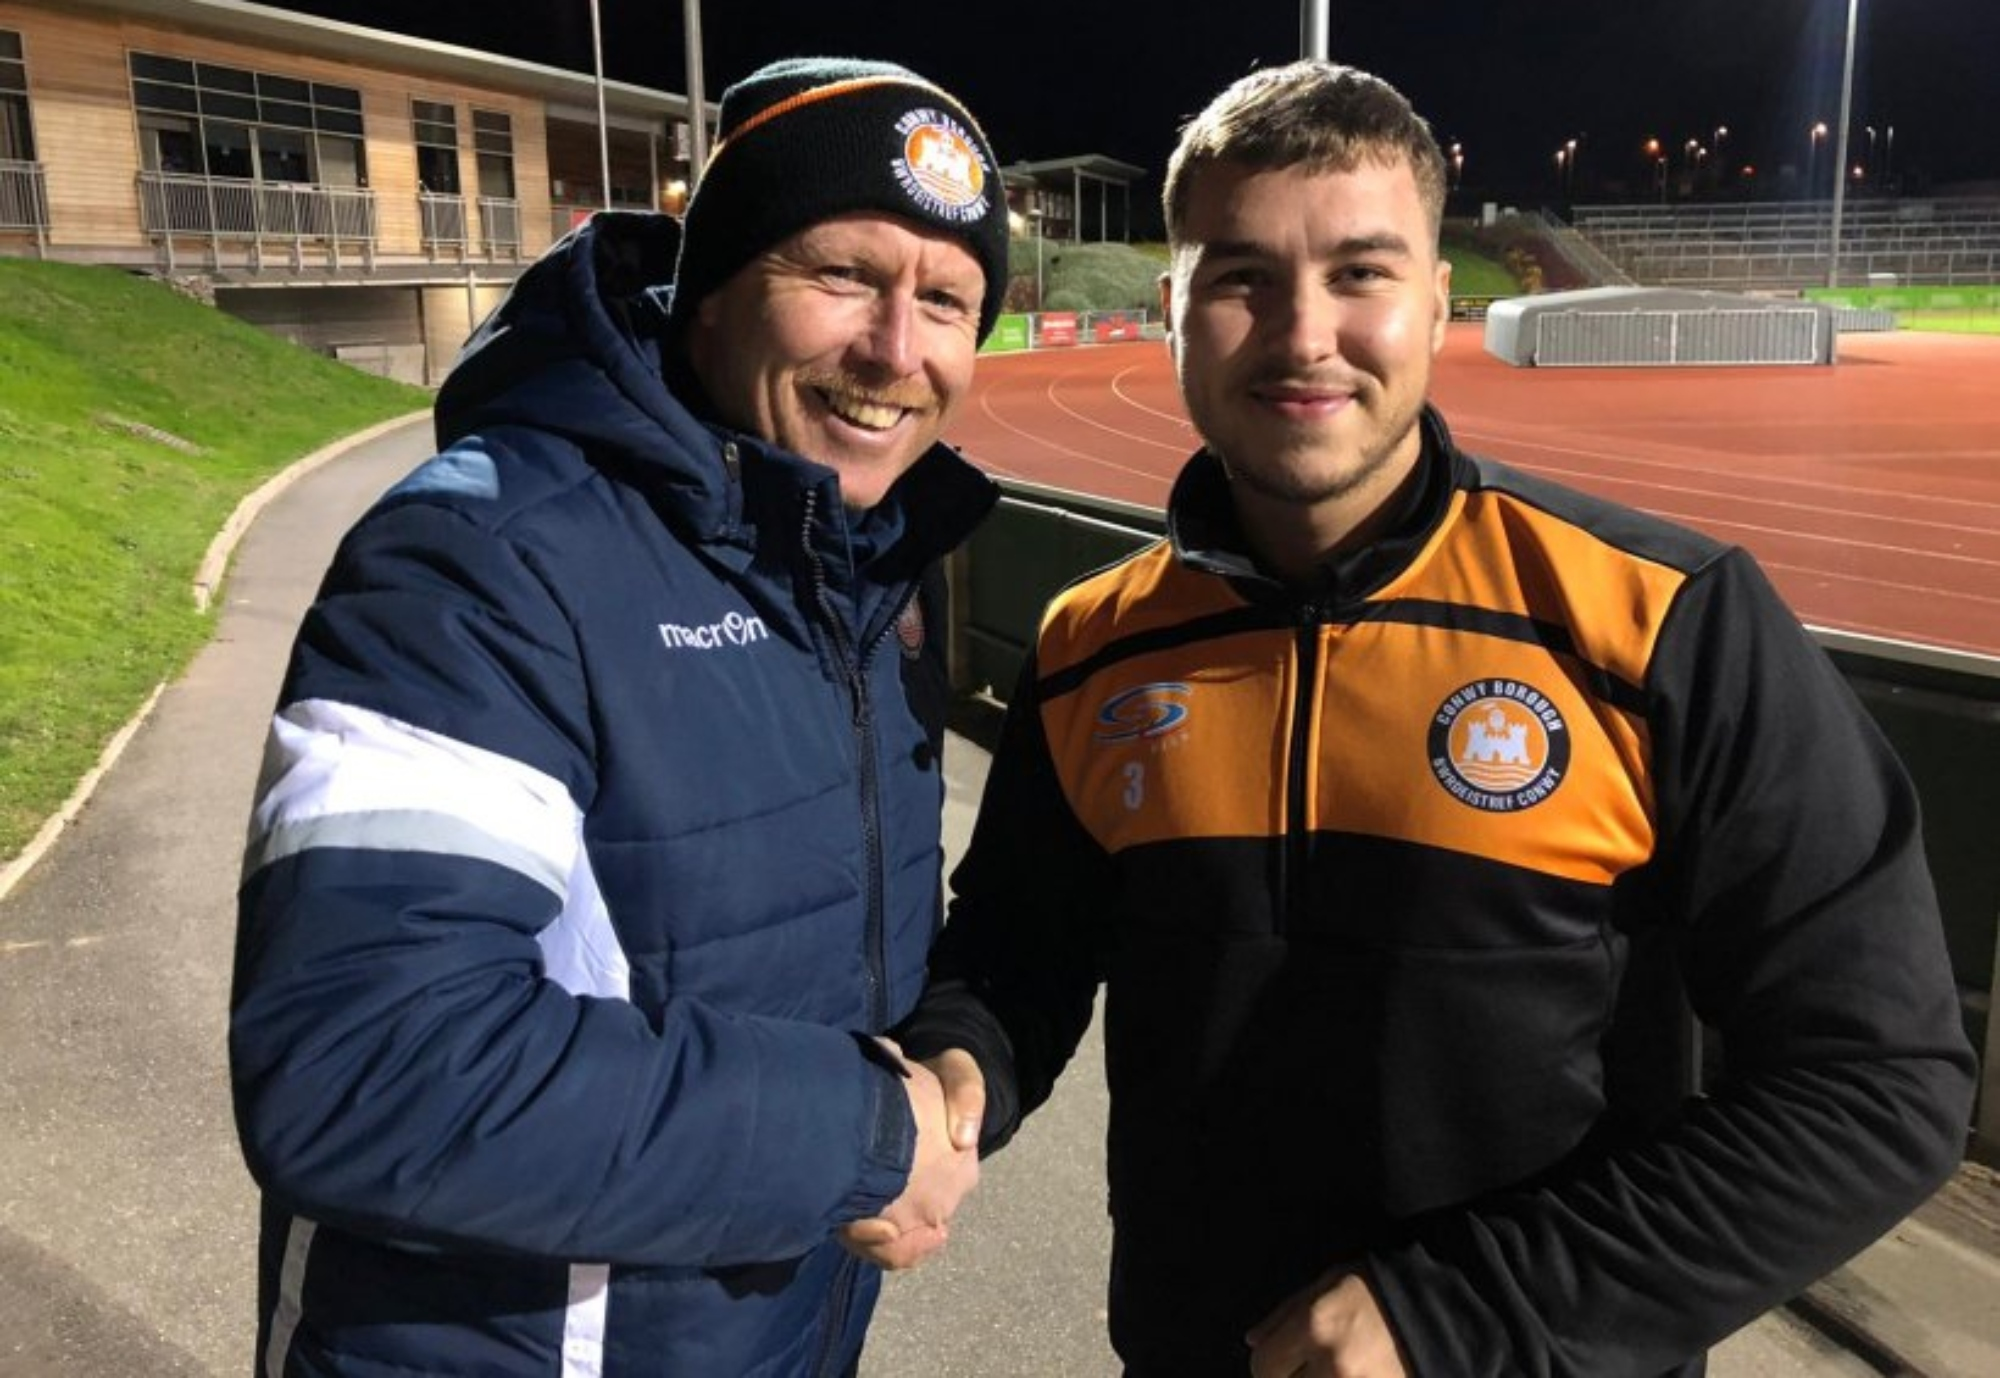 Jack Roberts with Conwy Borough manager Gareth Thomas